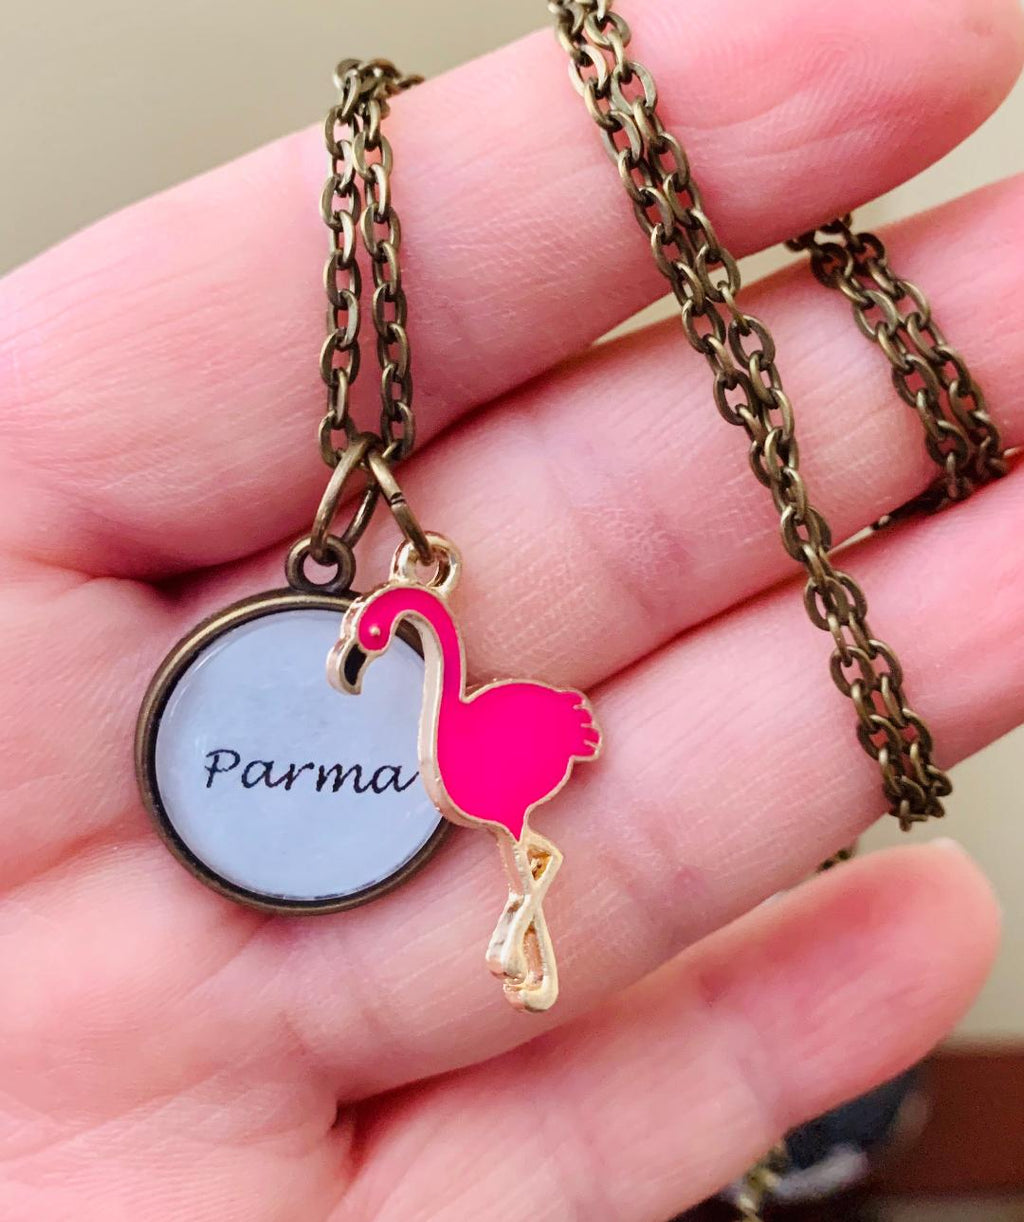 Parma Necklace With Flamingo Charm